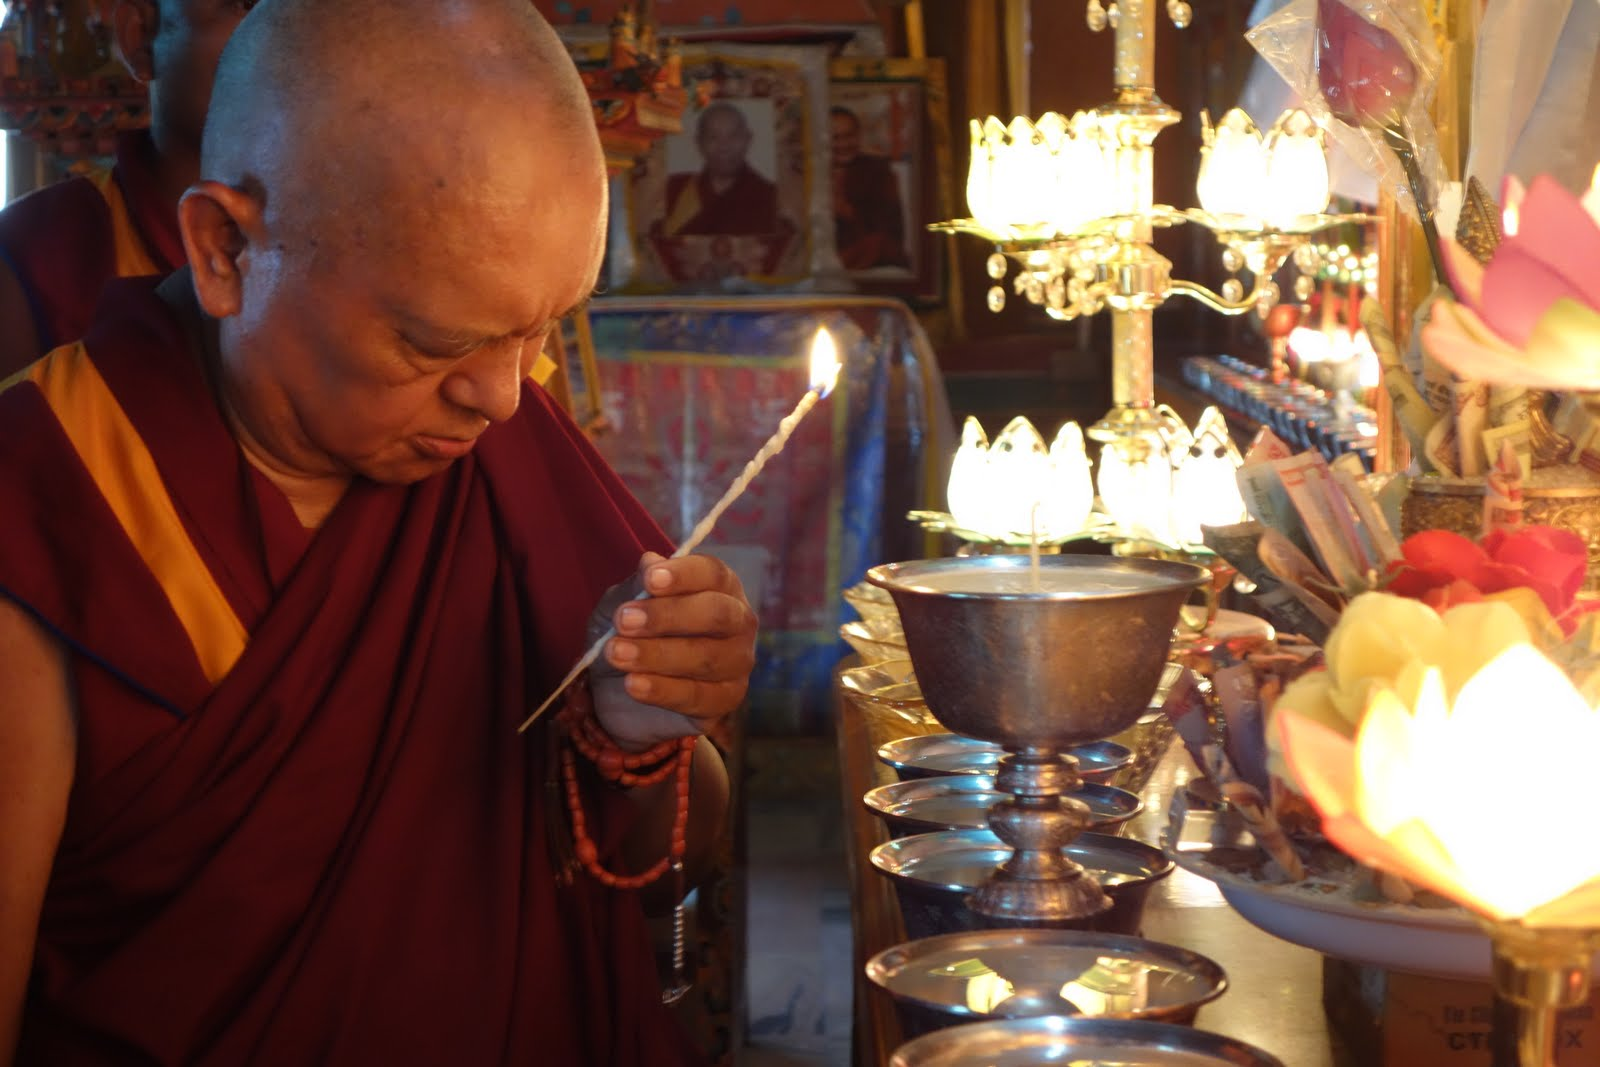 Rinpoche offering butter lamp. August 8, 2013 Photo: Ven. Roger Kunsang